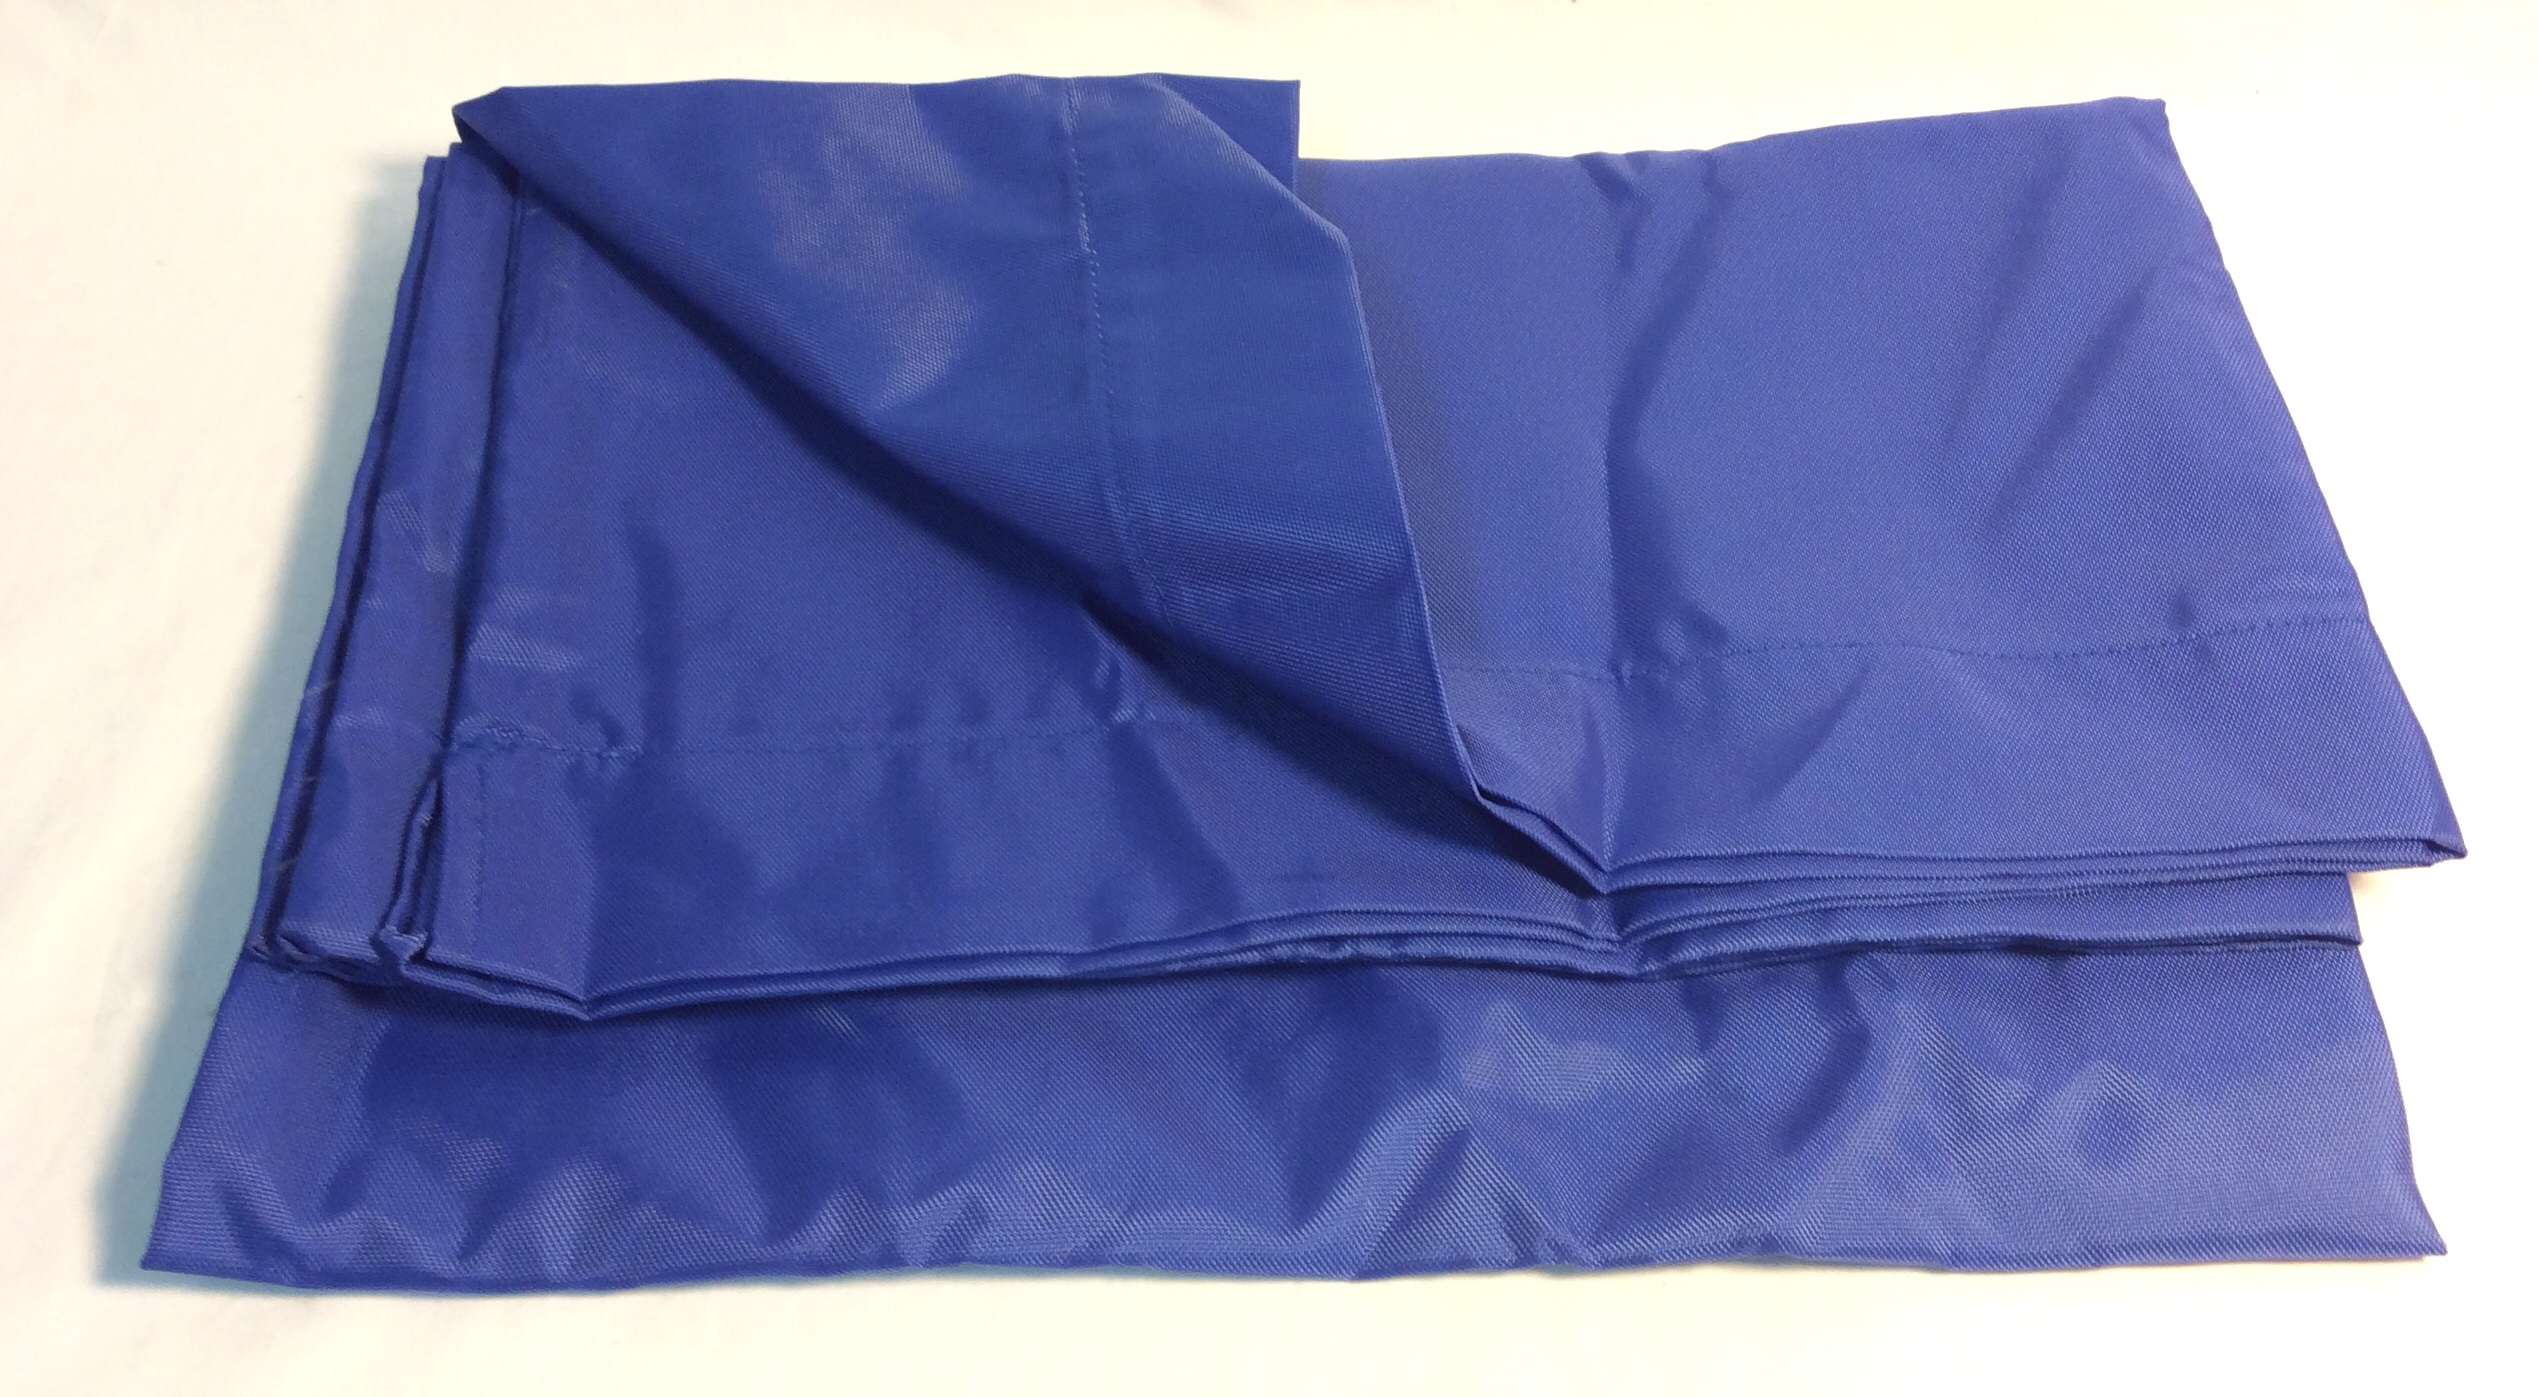 Blue polyester laundry bag for maids